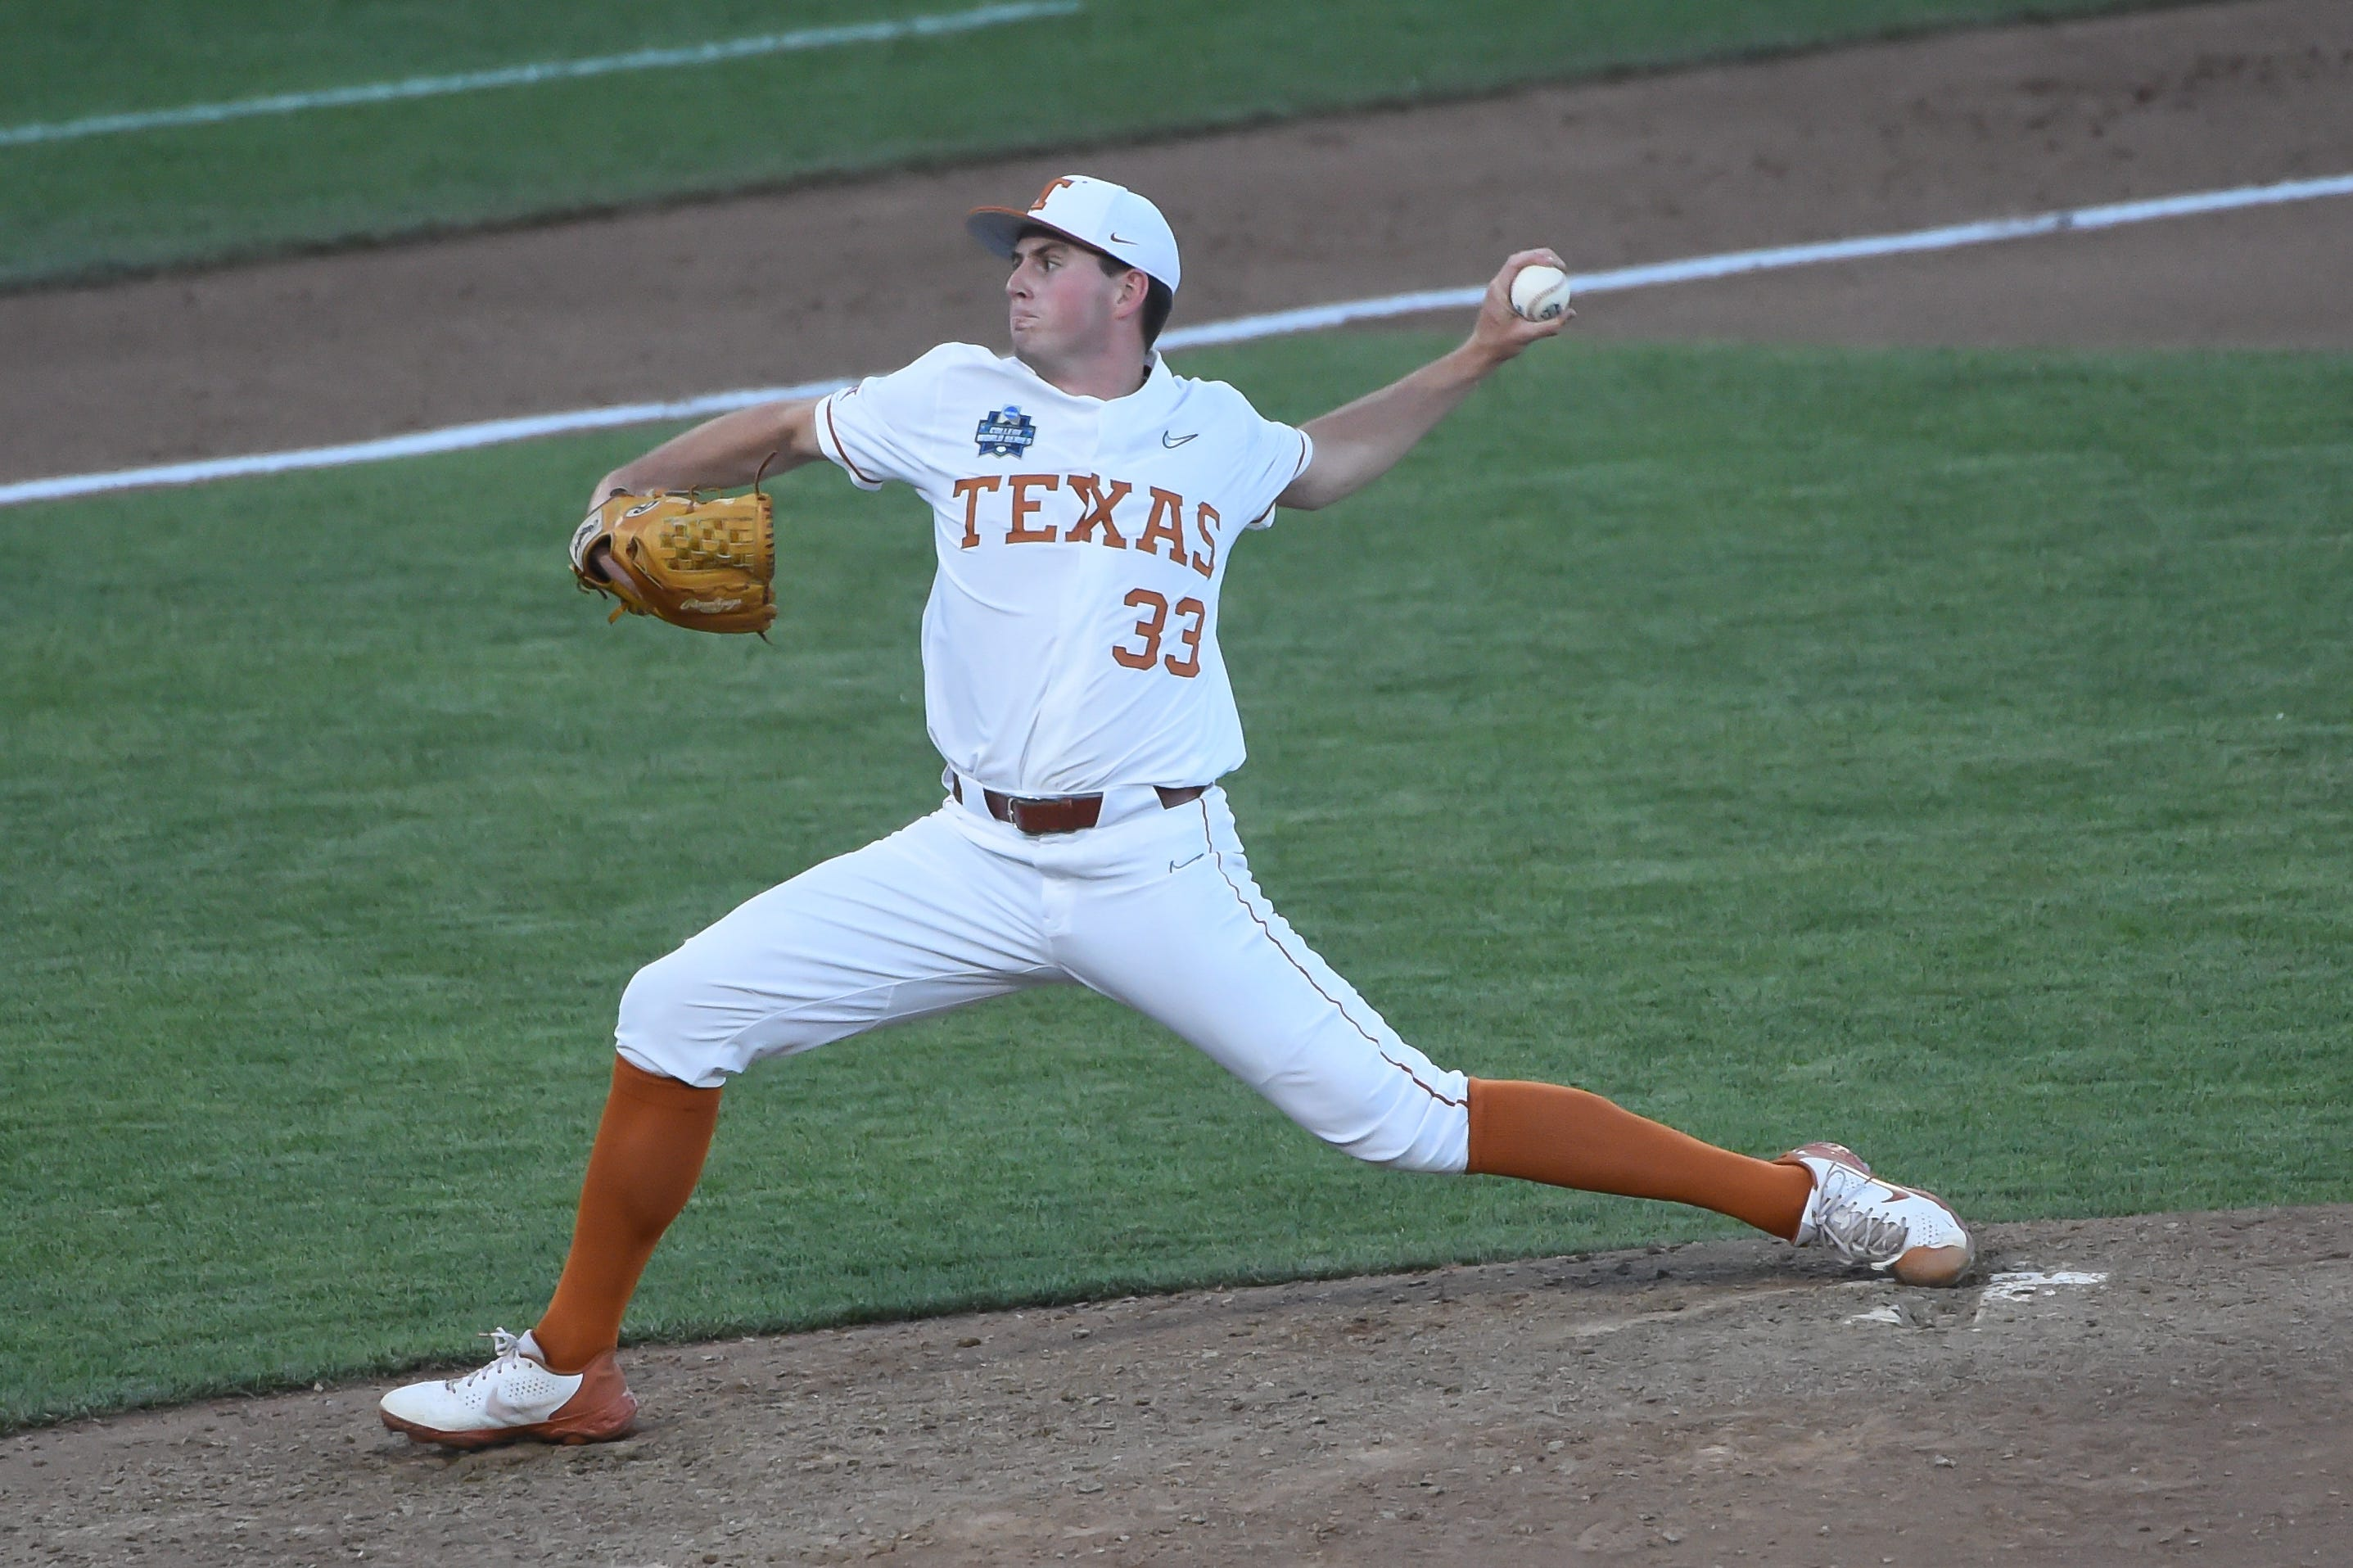 Jun 20, 2021; Omaha, Nebraska, USA; Texas Longhorns pitcher Pete Hansen (33) pitches in the eighth inning against the Mississippi State Bulldogs at TD Ameritrade Park. Mandatory Credit: Steven Branscombe-USA TODAY Sports